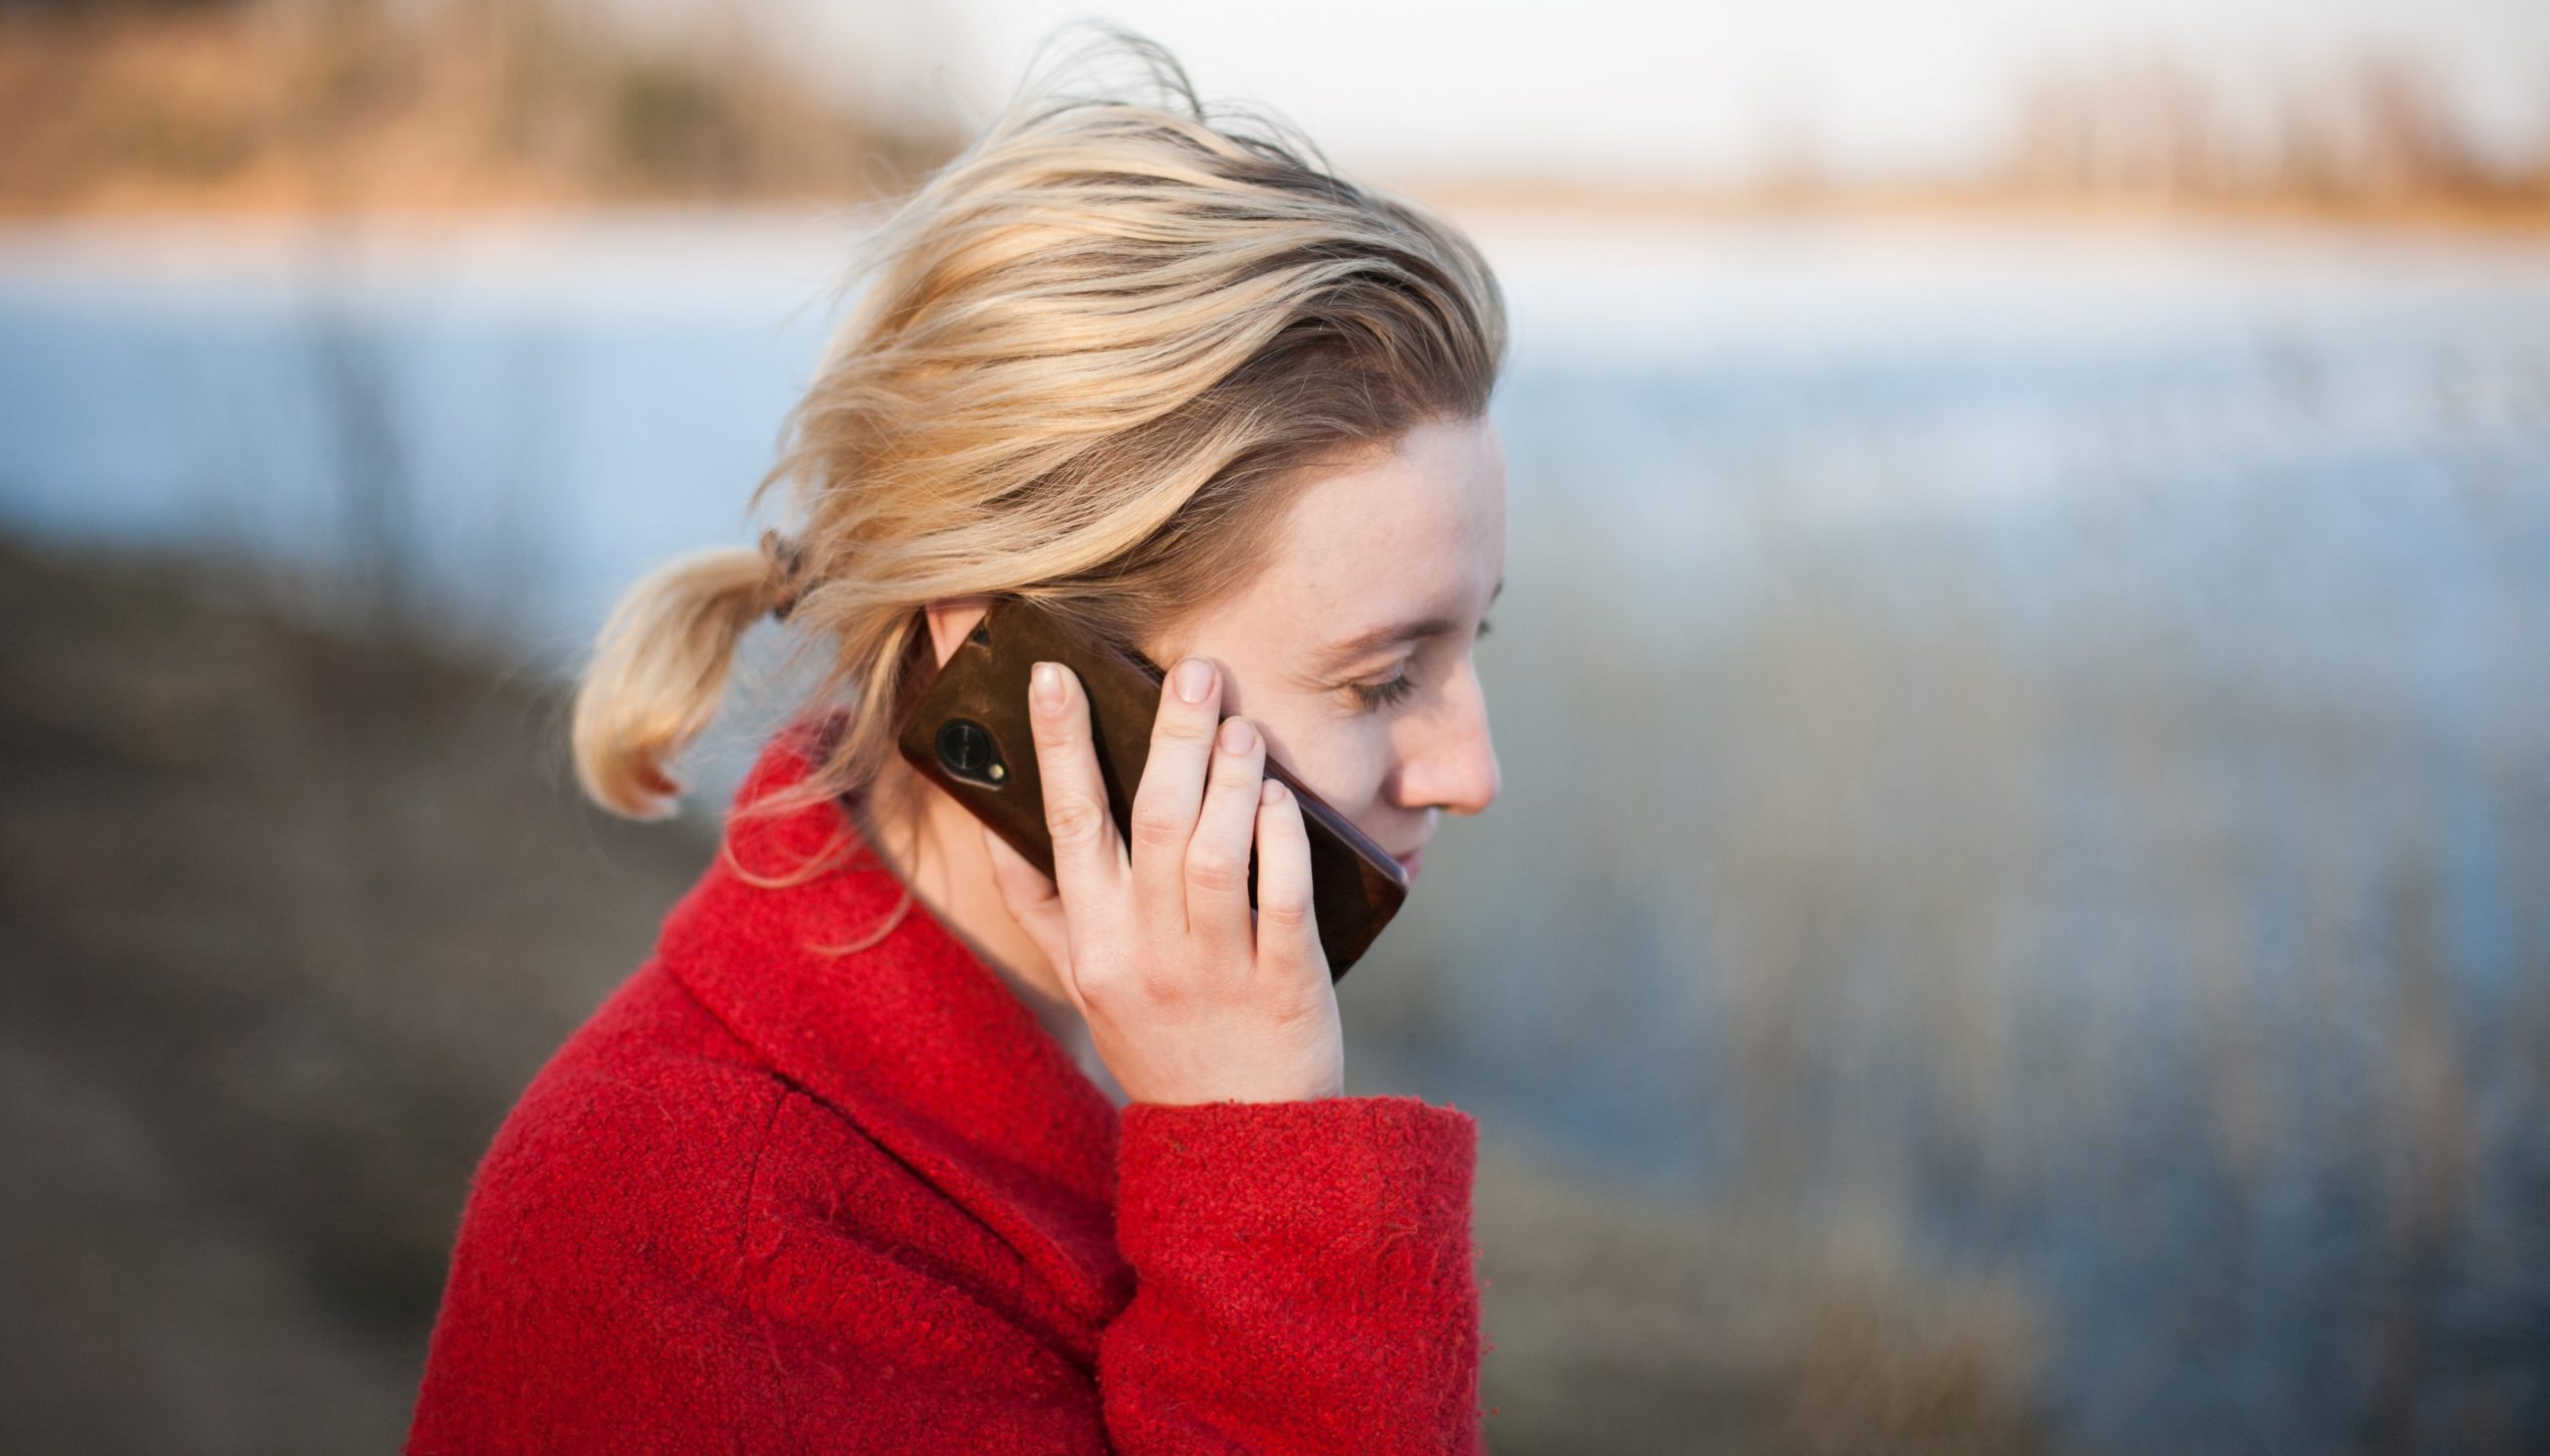 """""""When I found this number, it was a huge relief. It made all the difference knowing I could get the right advice for what I was going through by someone who understands."""""""